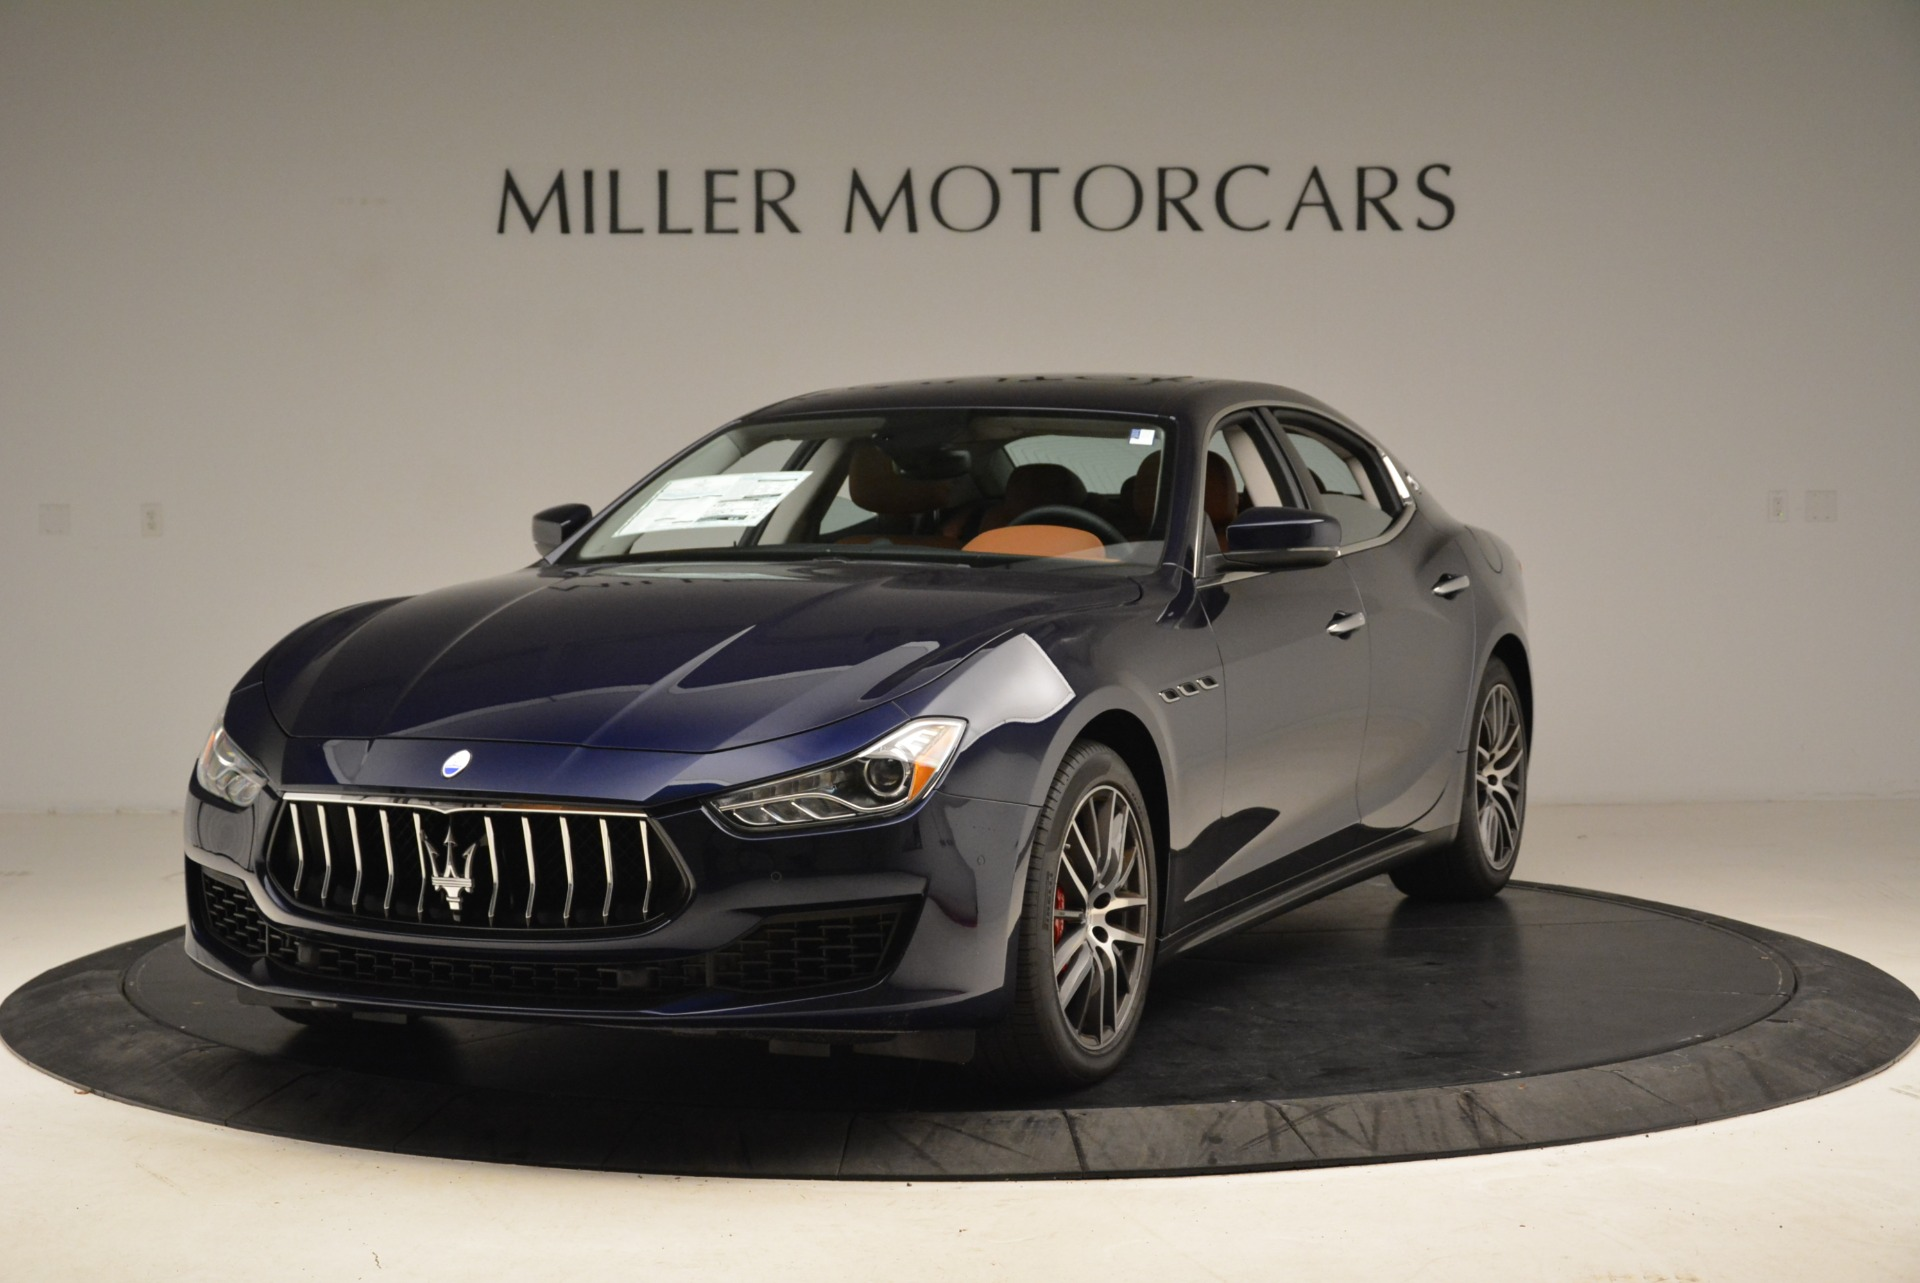 New 2018 Maserati Ghibli S Q4 For Sale In Greenwich, CT 1928_main